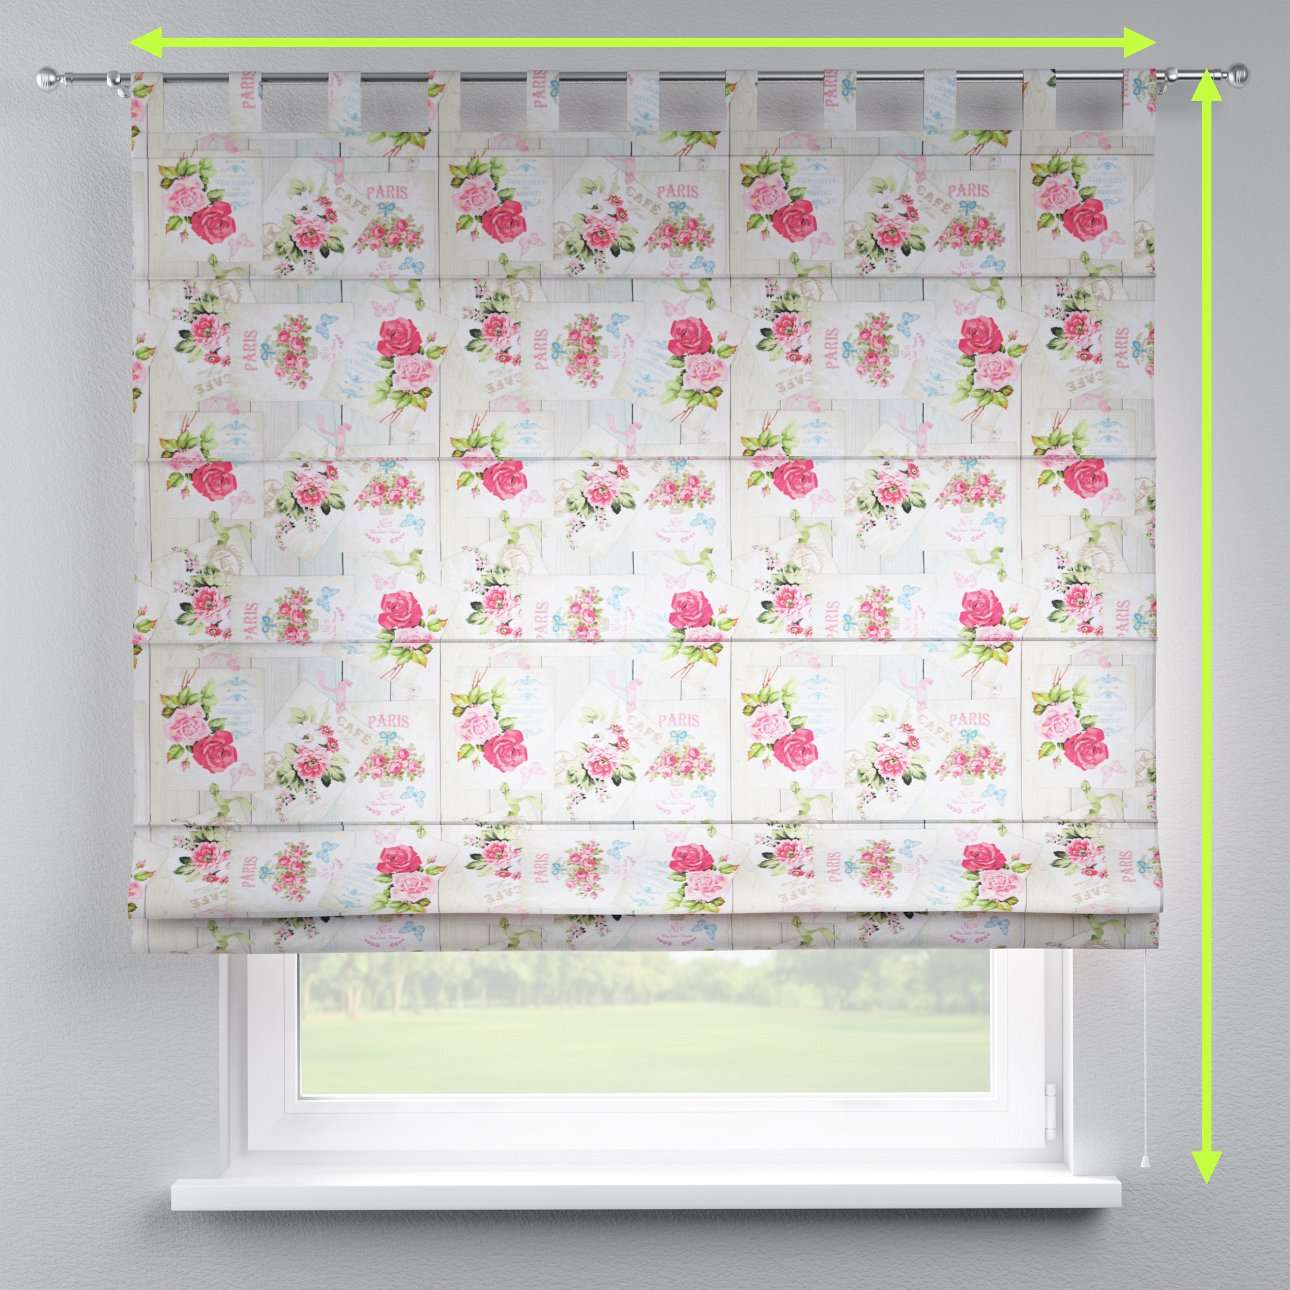 Verona tab top roman blind in collection Ashley, fabric: 140-19